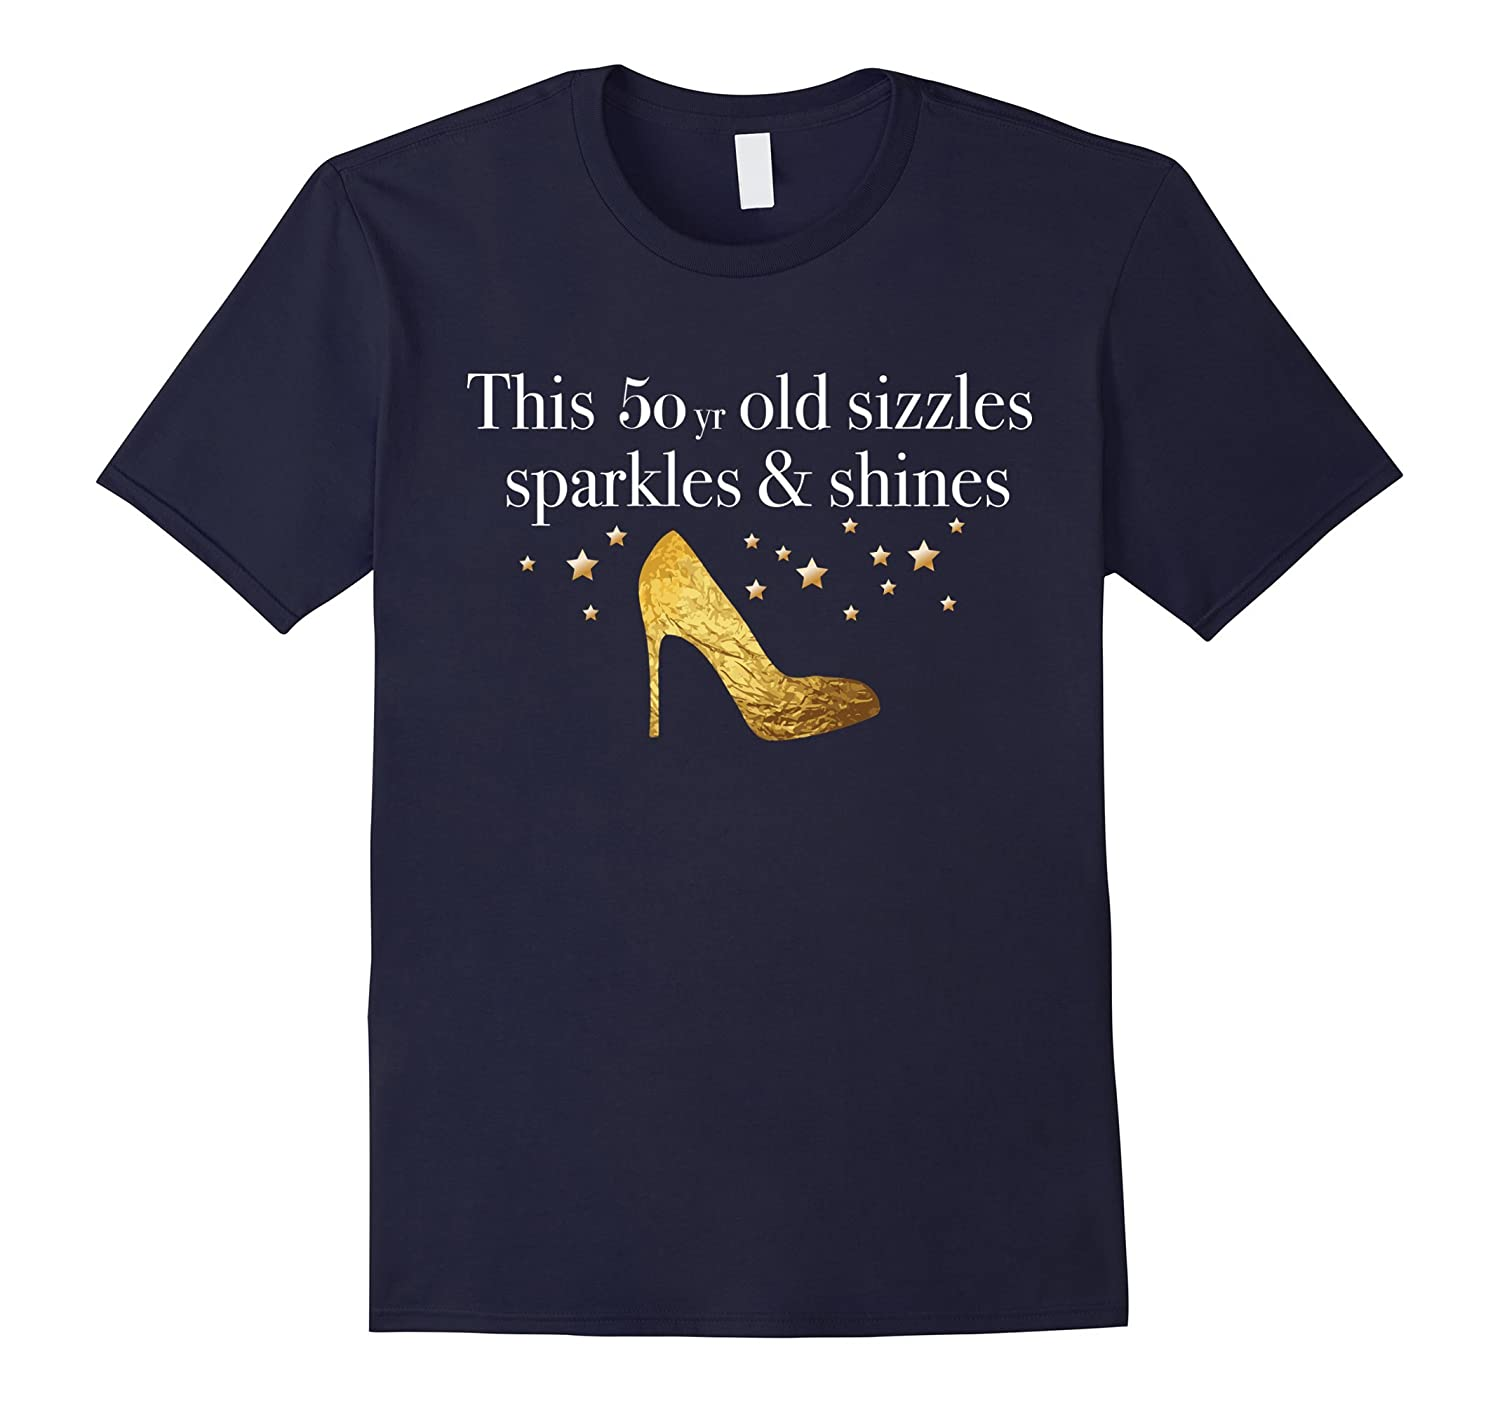 50th Birthday Shirts  The 50yr Old SizzlesSparkles Shines-TJ